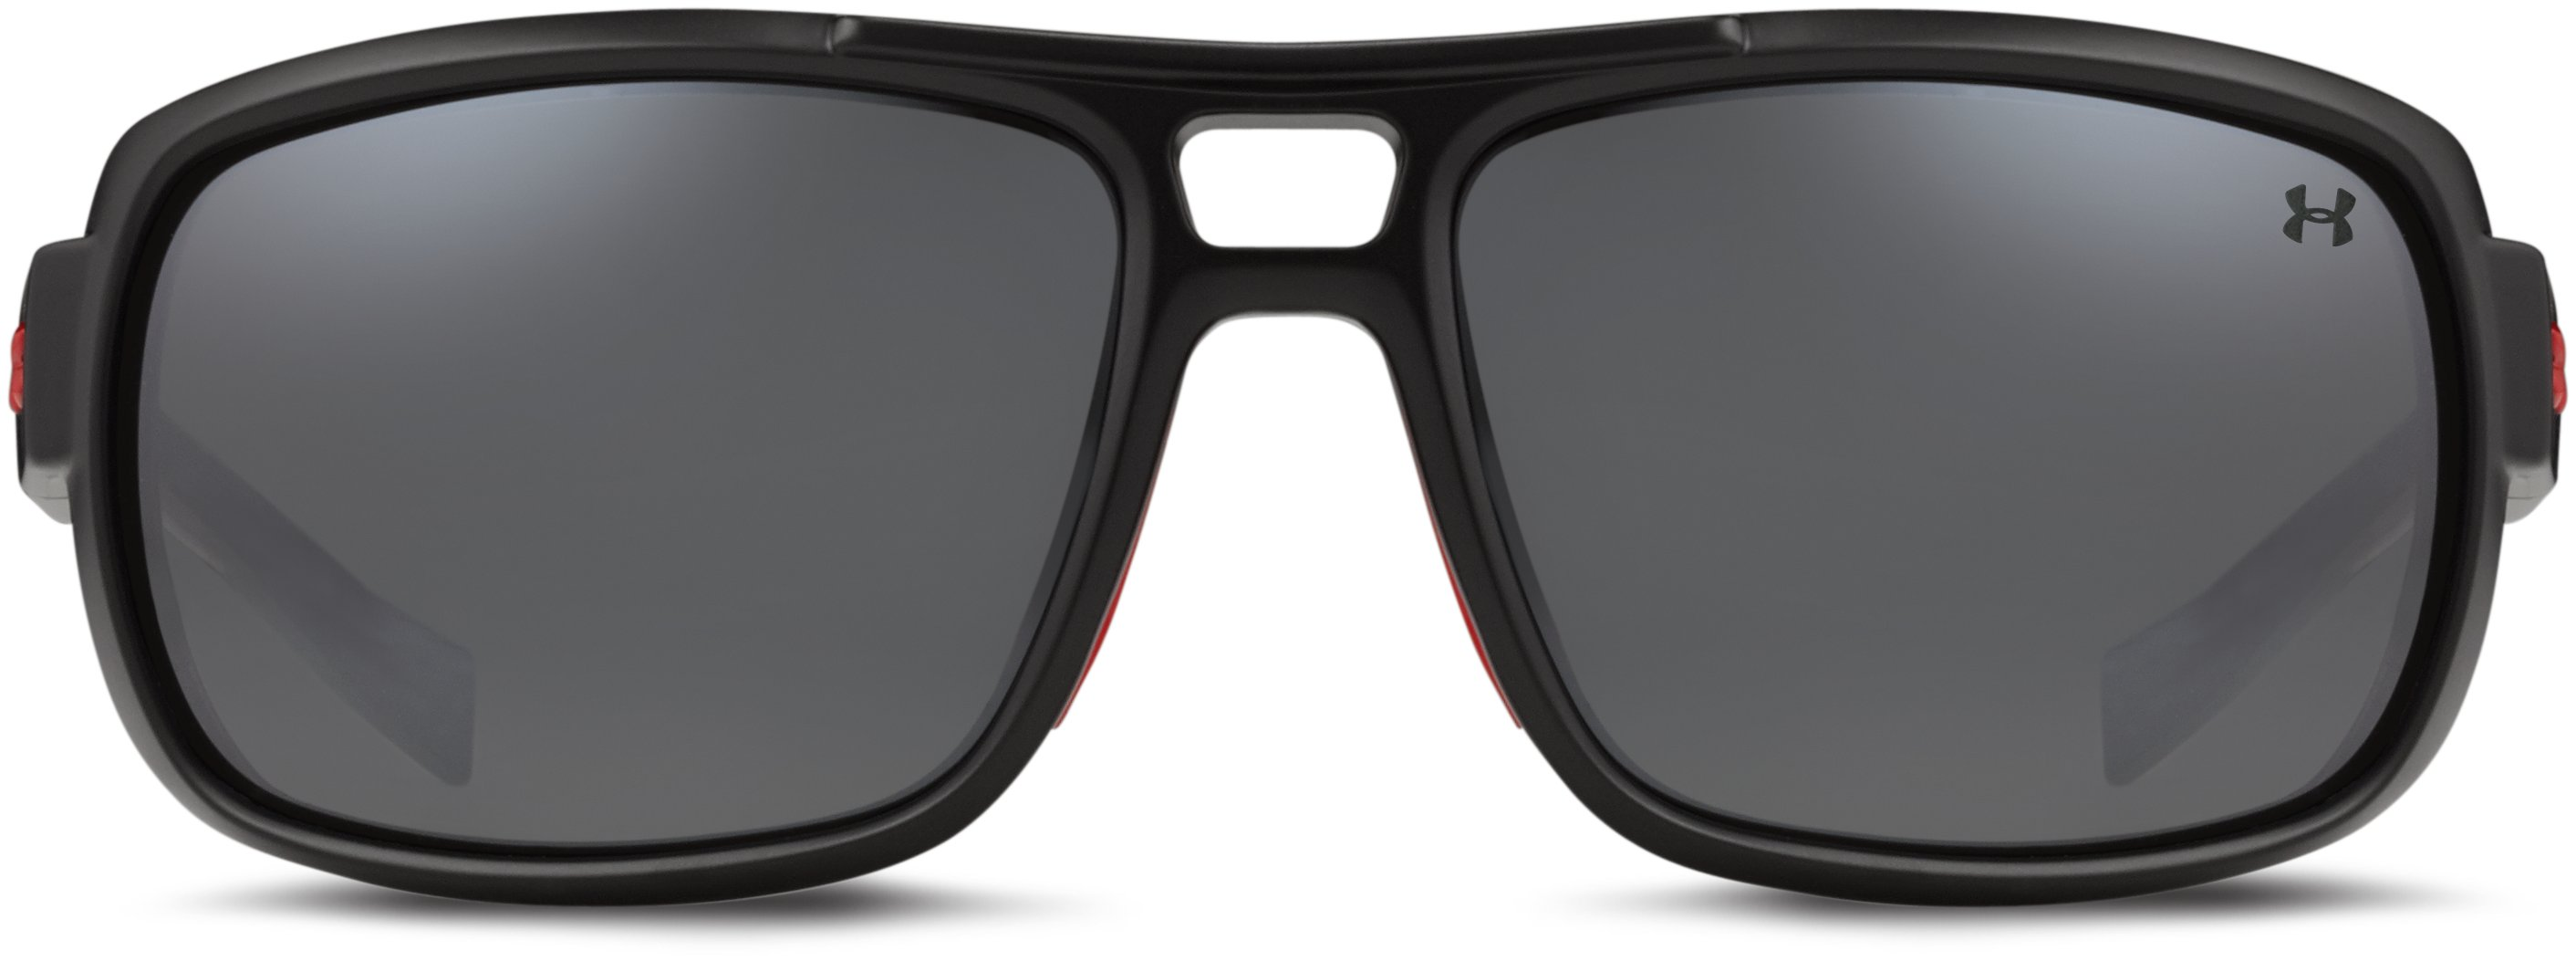 UA Sideline Sunglasses, Satin Black